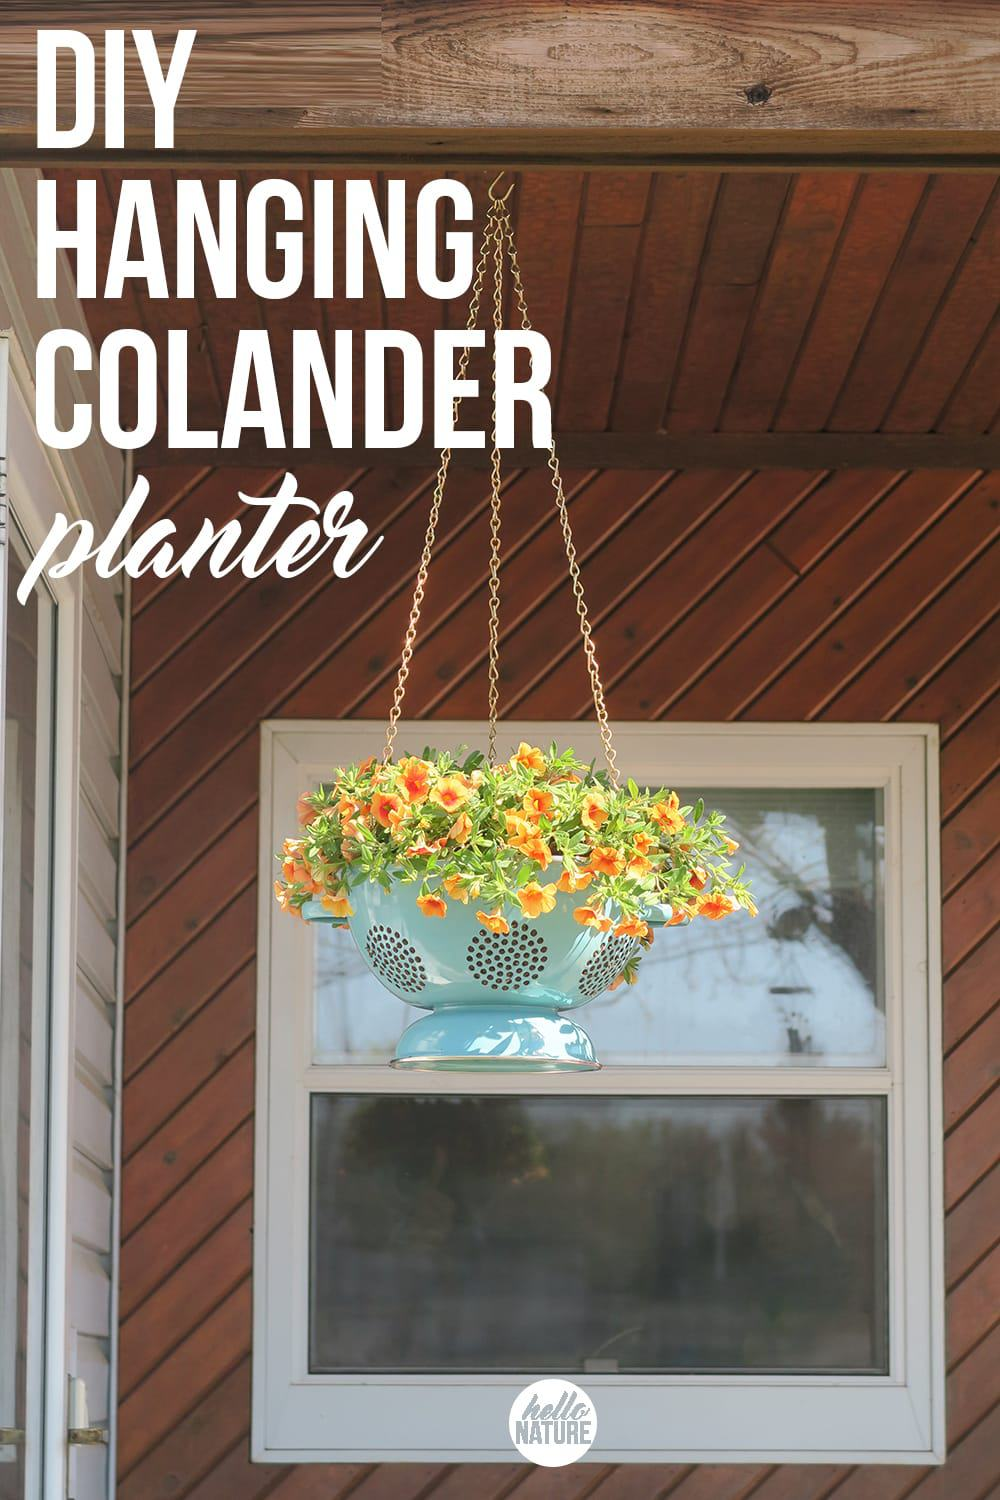 Blue colander hanging planter.